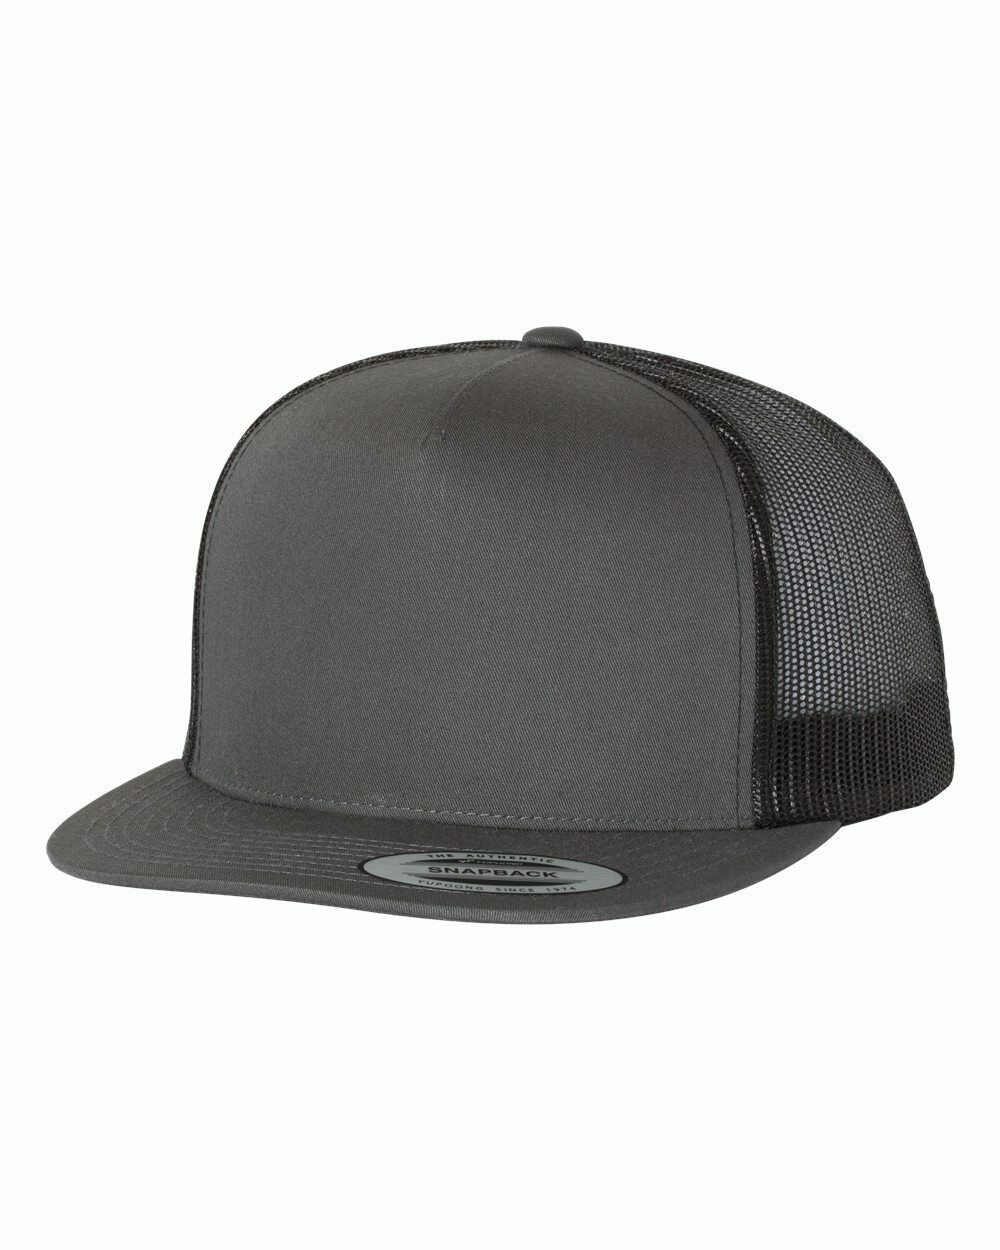 Primary image for  SNAPBACK Yupoong Trucker HAT  *FREE SHIPPING in BOX*